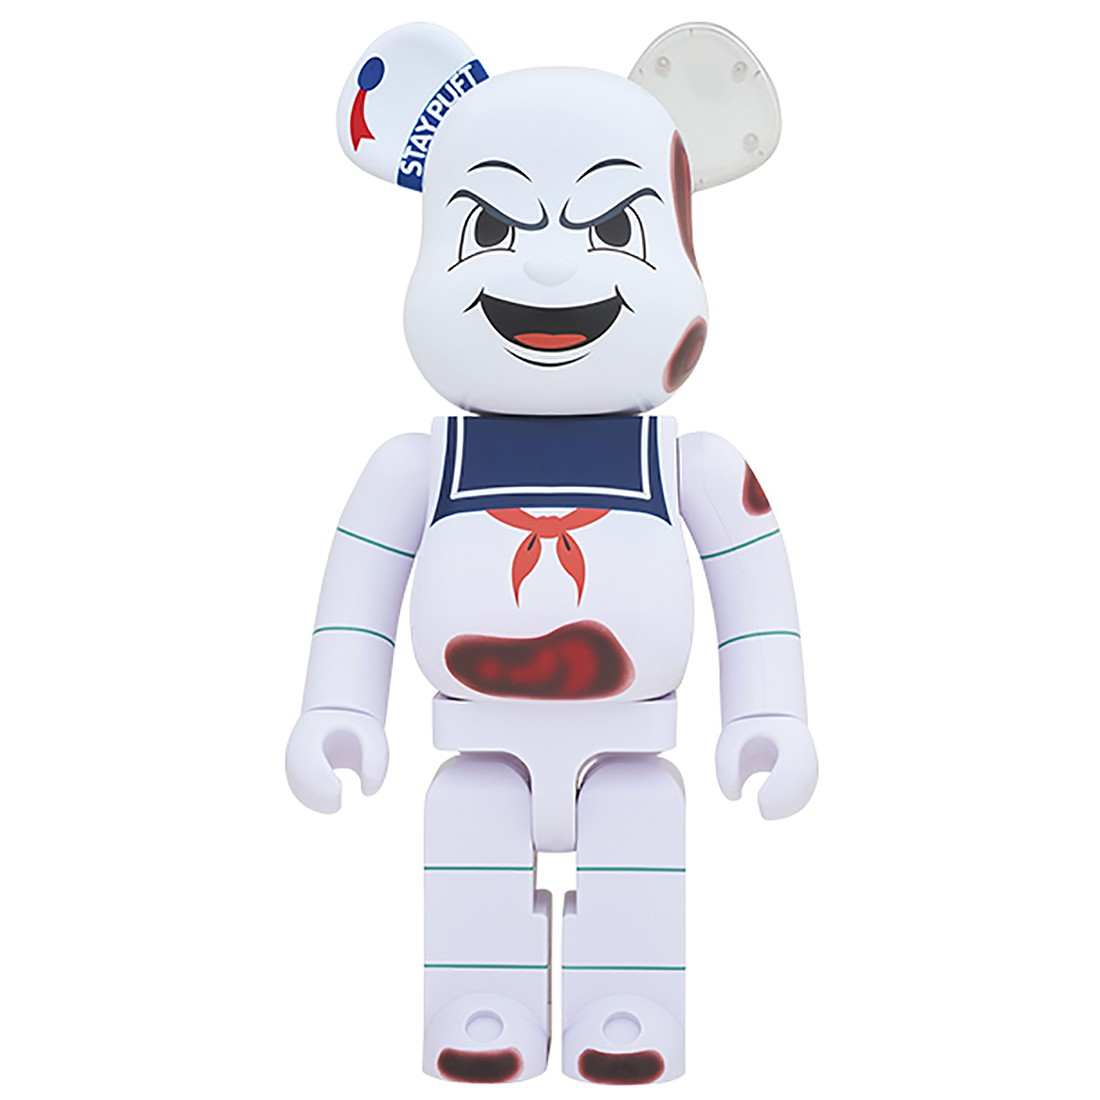 PREORDER - Medicom Ghostbusters Stay Puft Marshmallow Man Anger Face 1000% Bearbrick Figure (white)